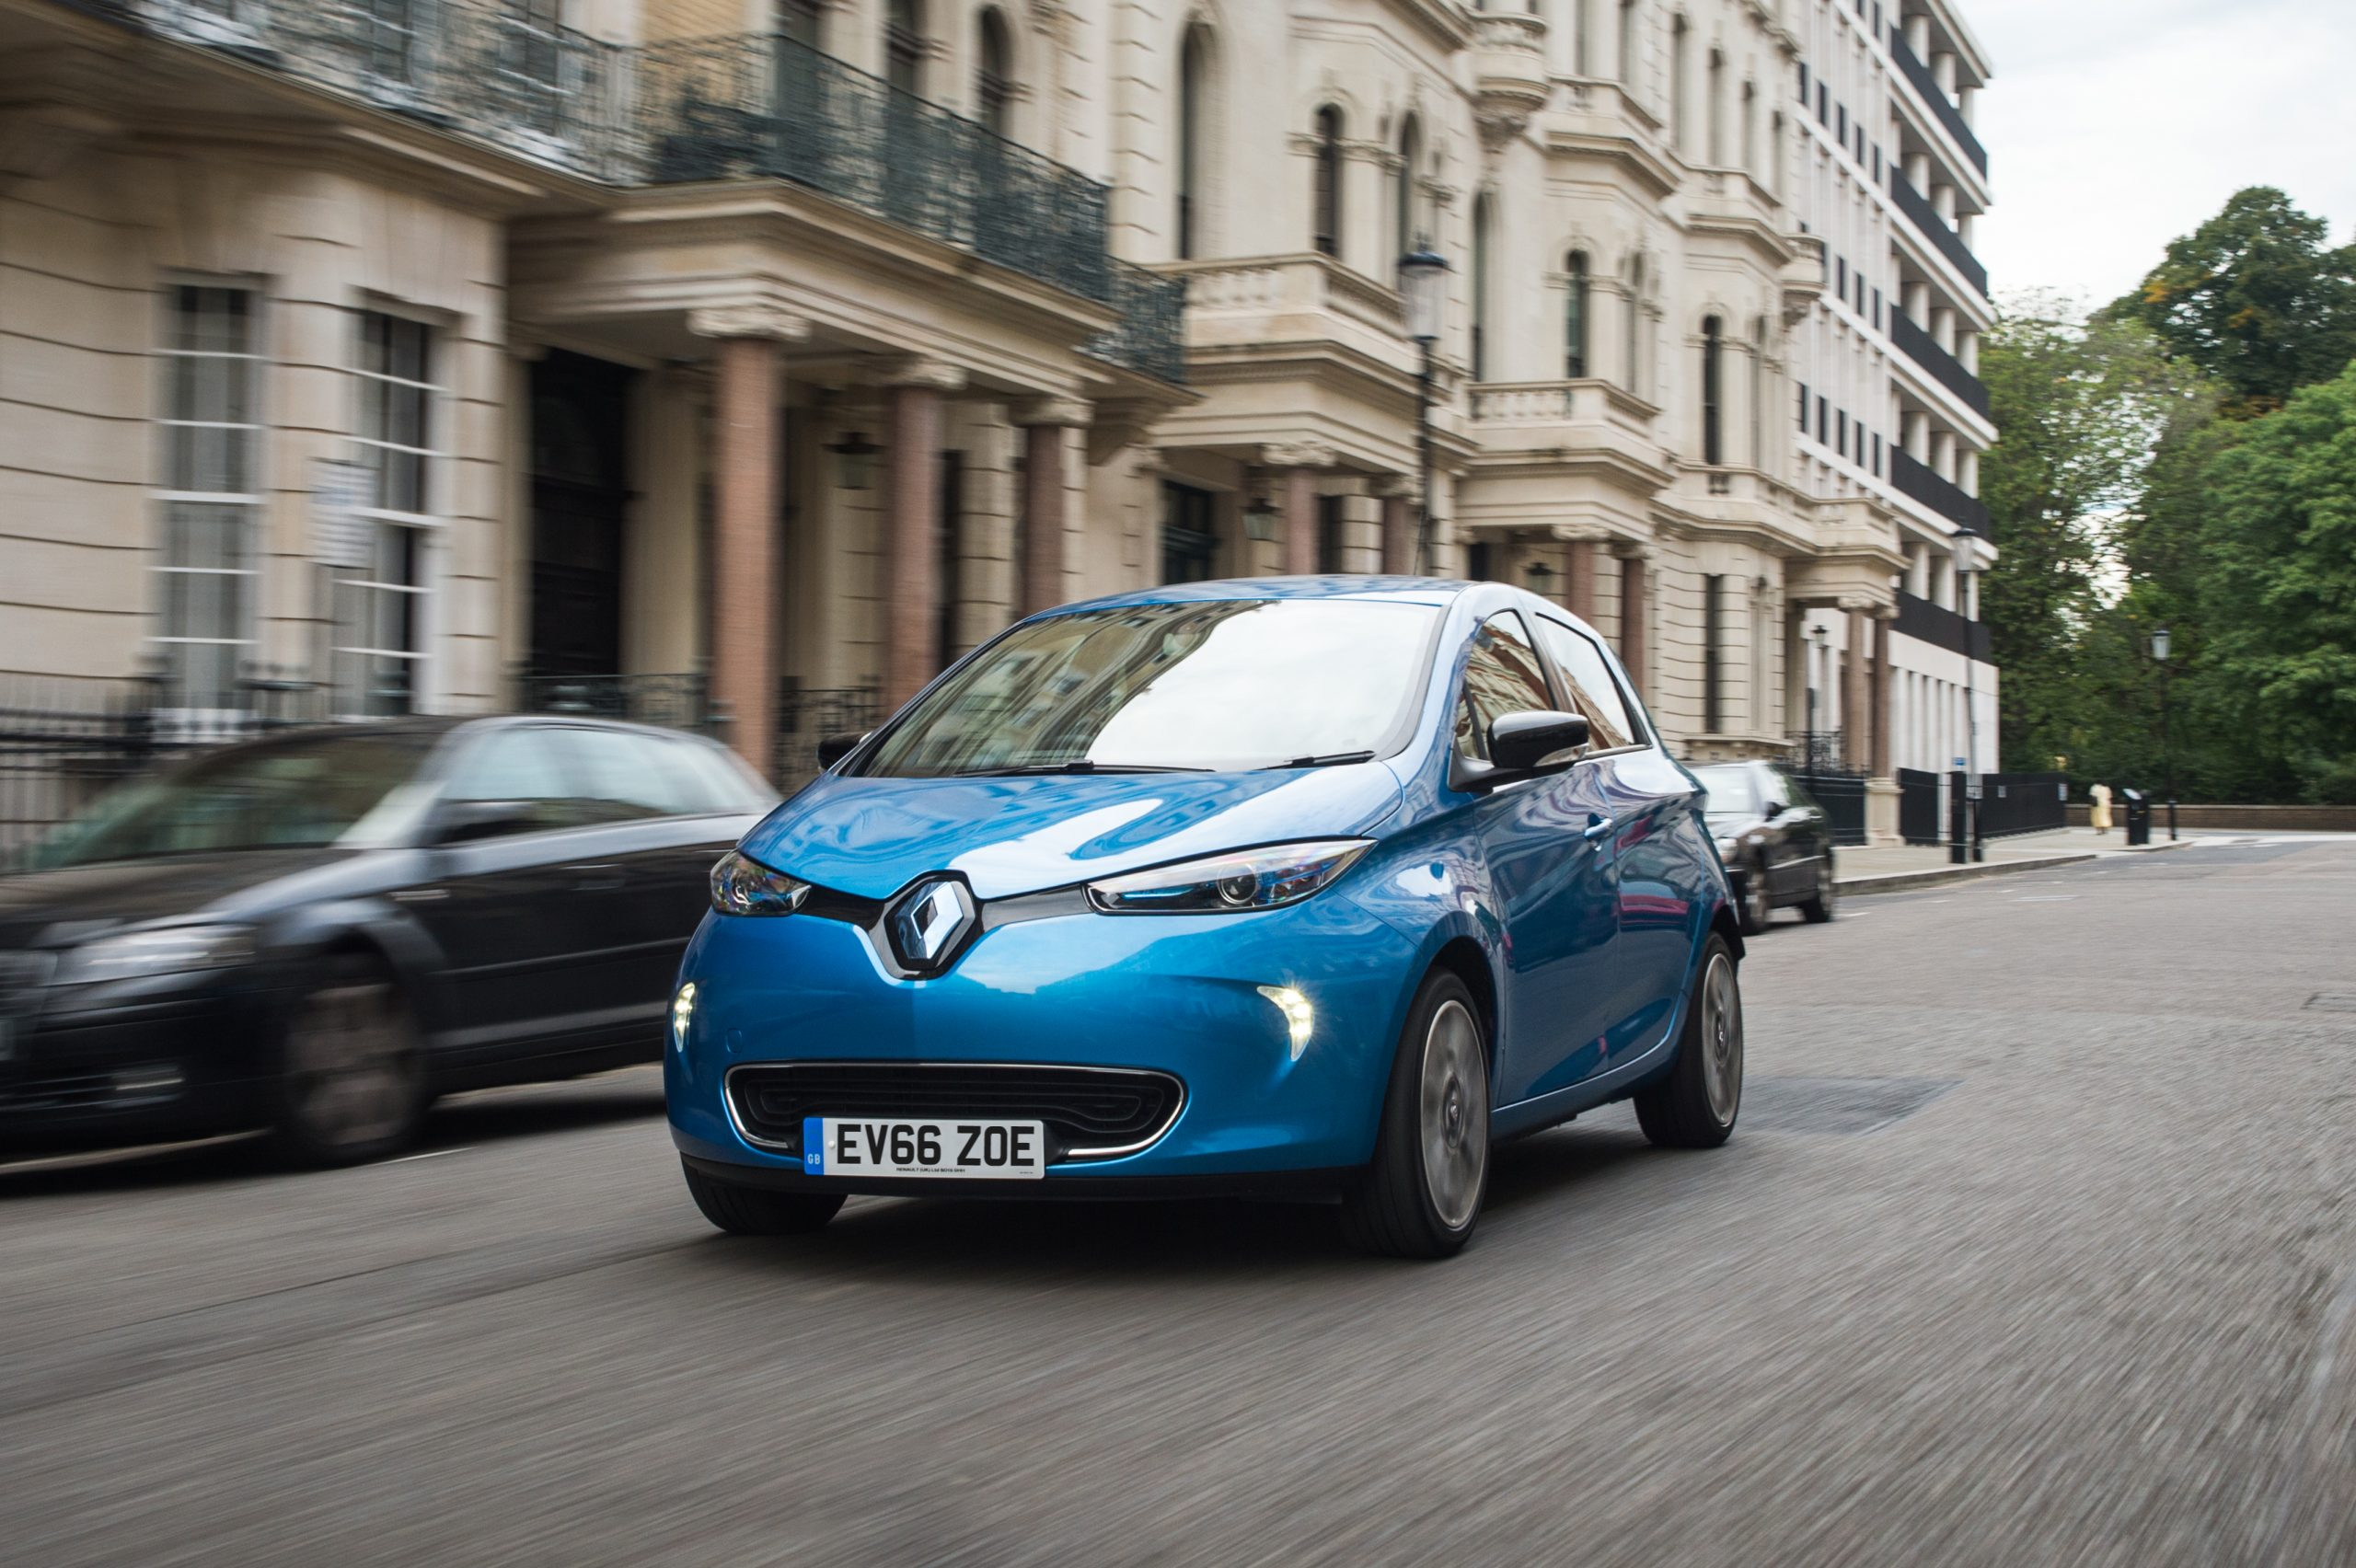 A Renault Zoe on the road